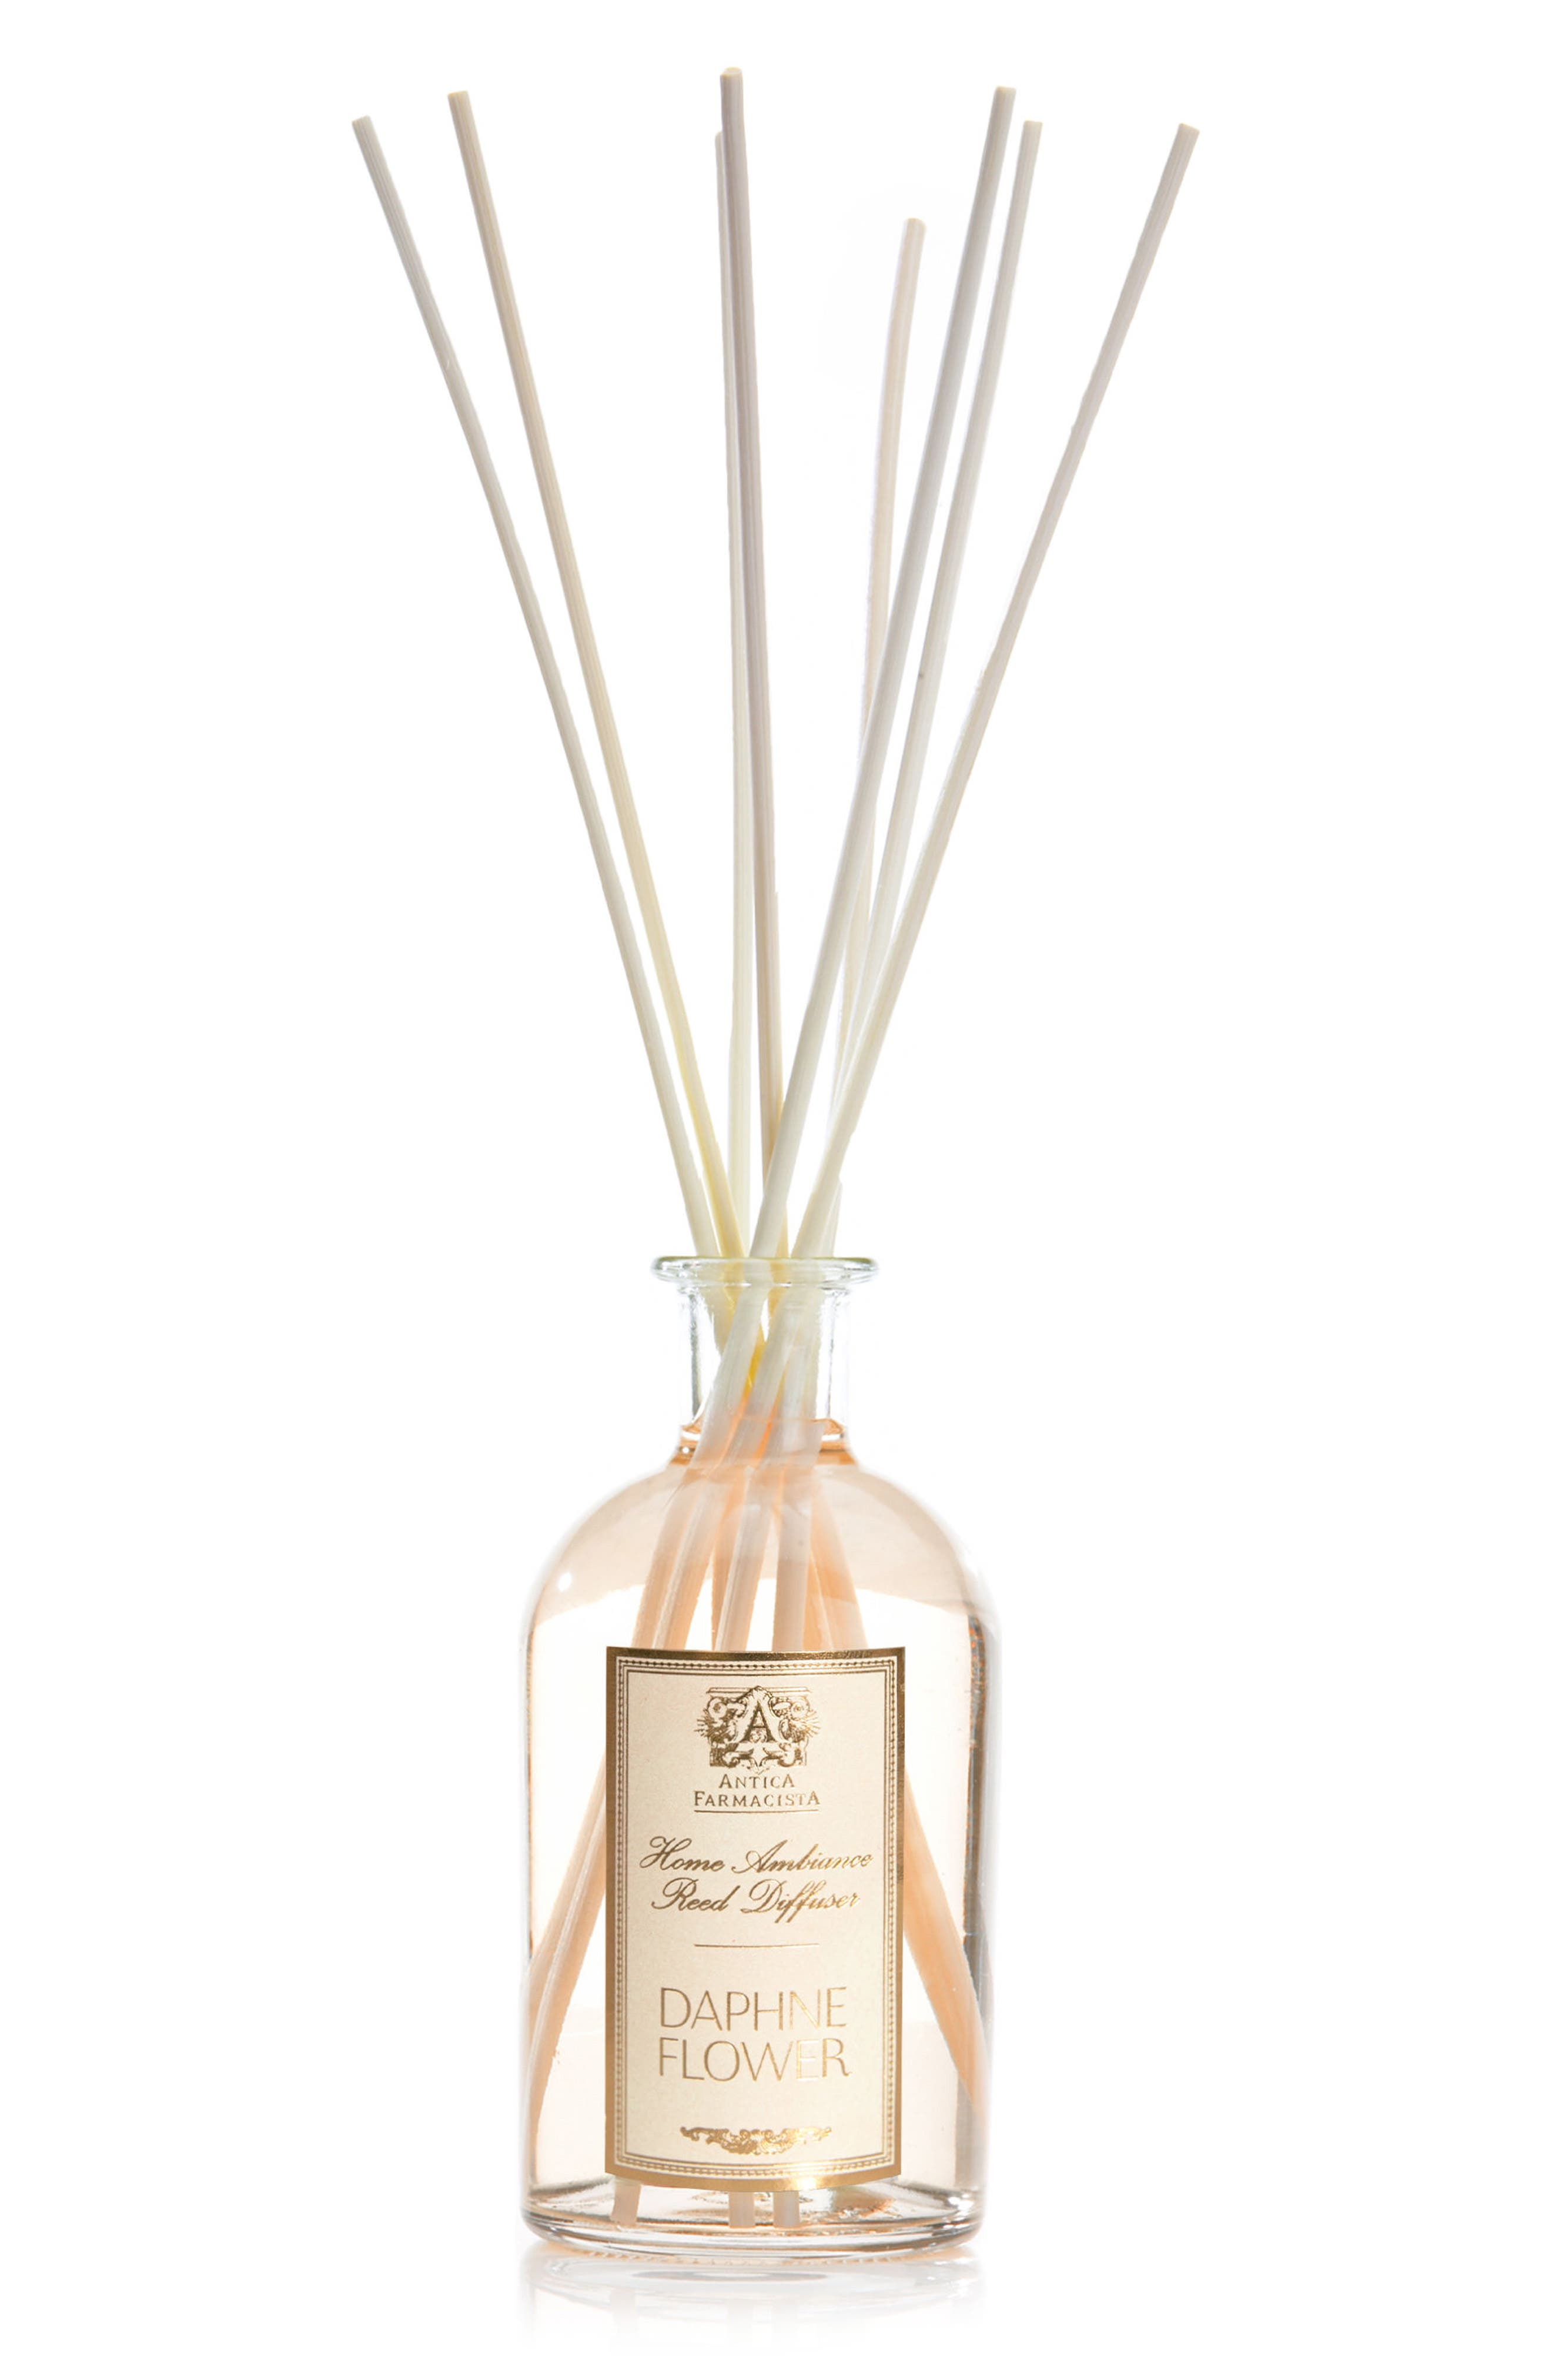 Daphne Flower Home Ambiance Diffuser,                             Main thumbnail 1, color,                             No Color